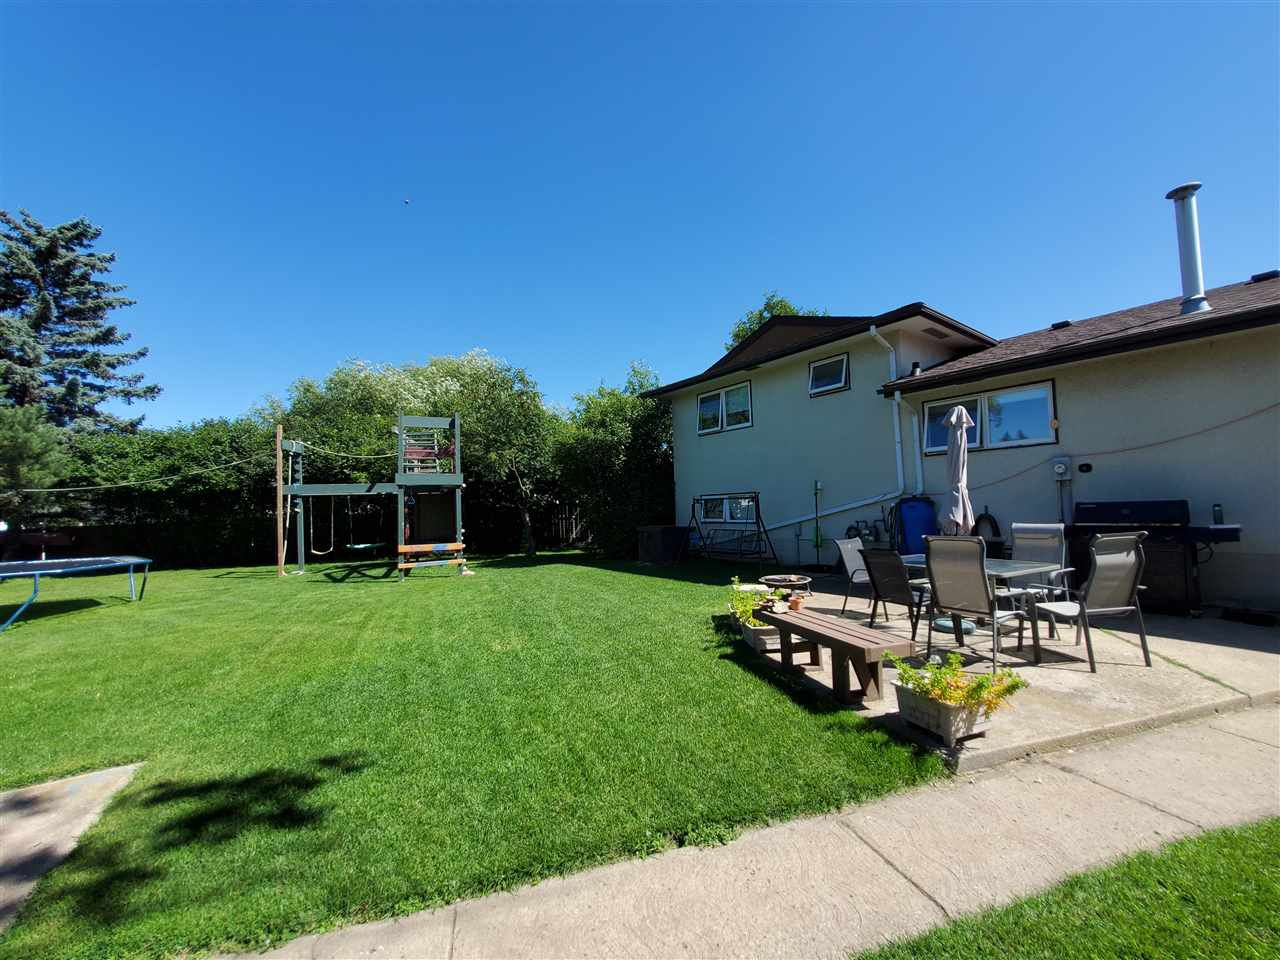 Photo 35: Photos: 125 Spruce Crescent: Wetaskiwin House for sale : MLS®# E4207728